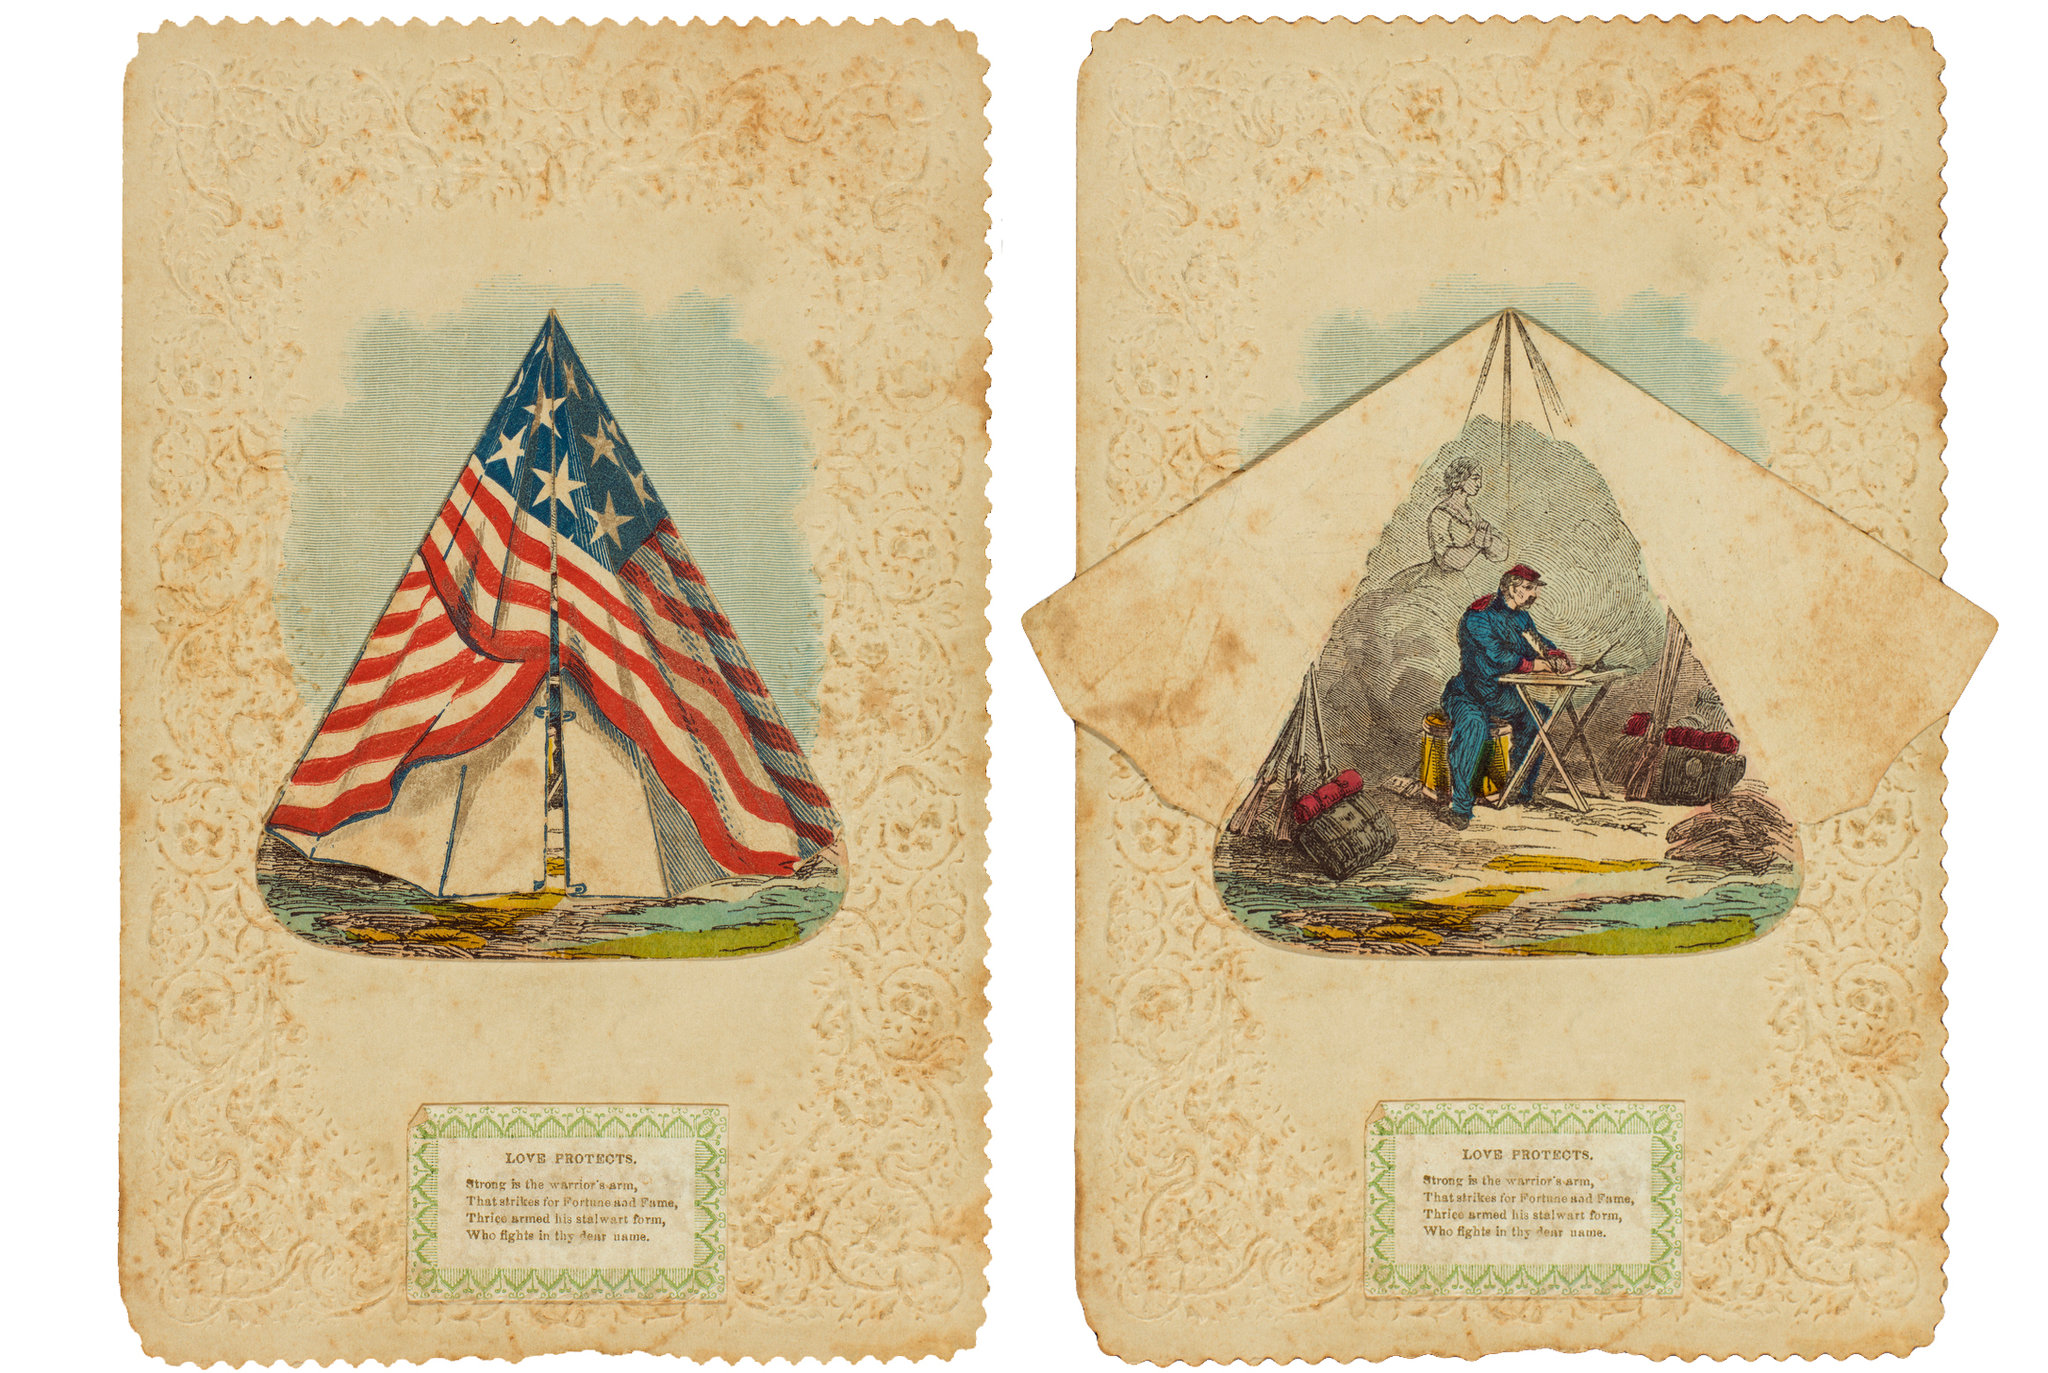 A Civil War Valentine dated Feb. 14, 1863. The tent's flaps open to reveal a soldier composing a love letter while envisioning his beloved.